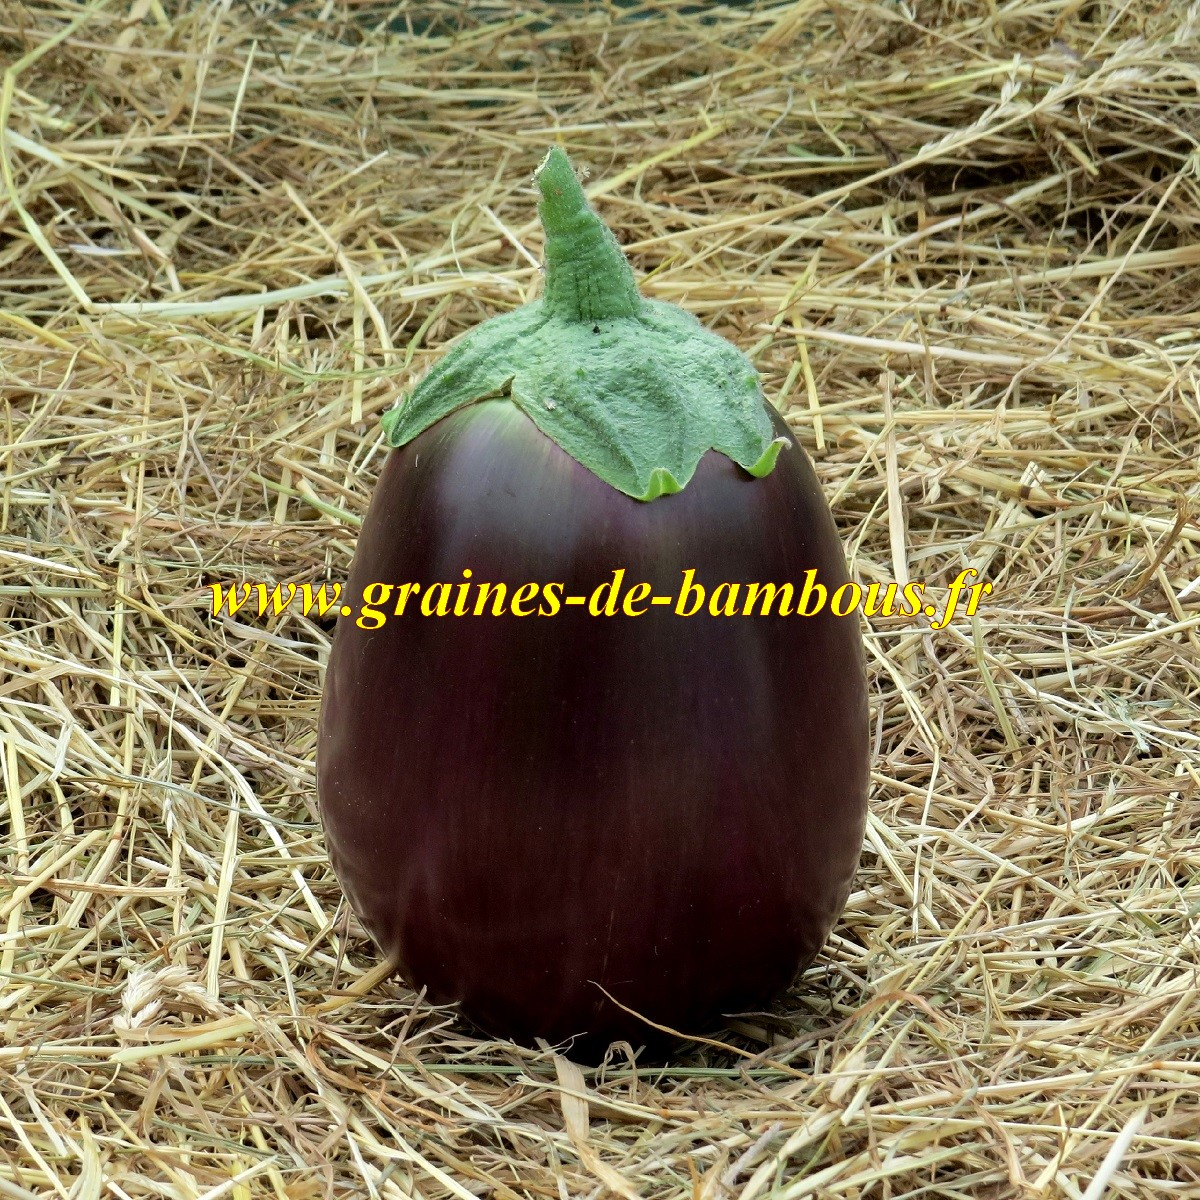 Graines d aubergine black beauty